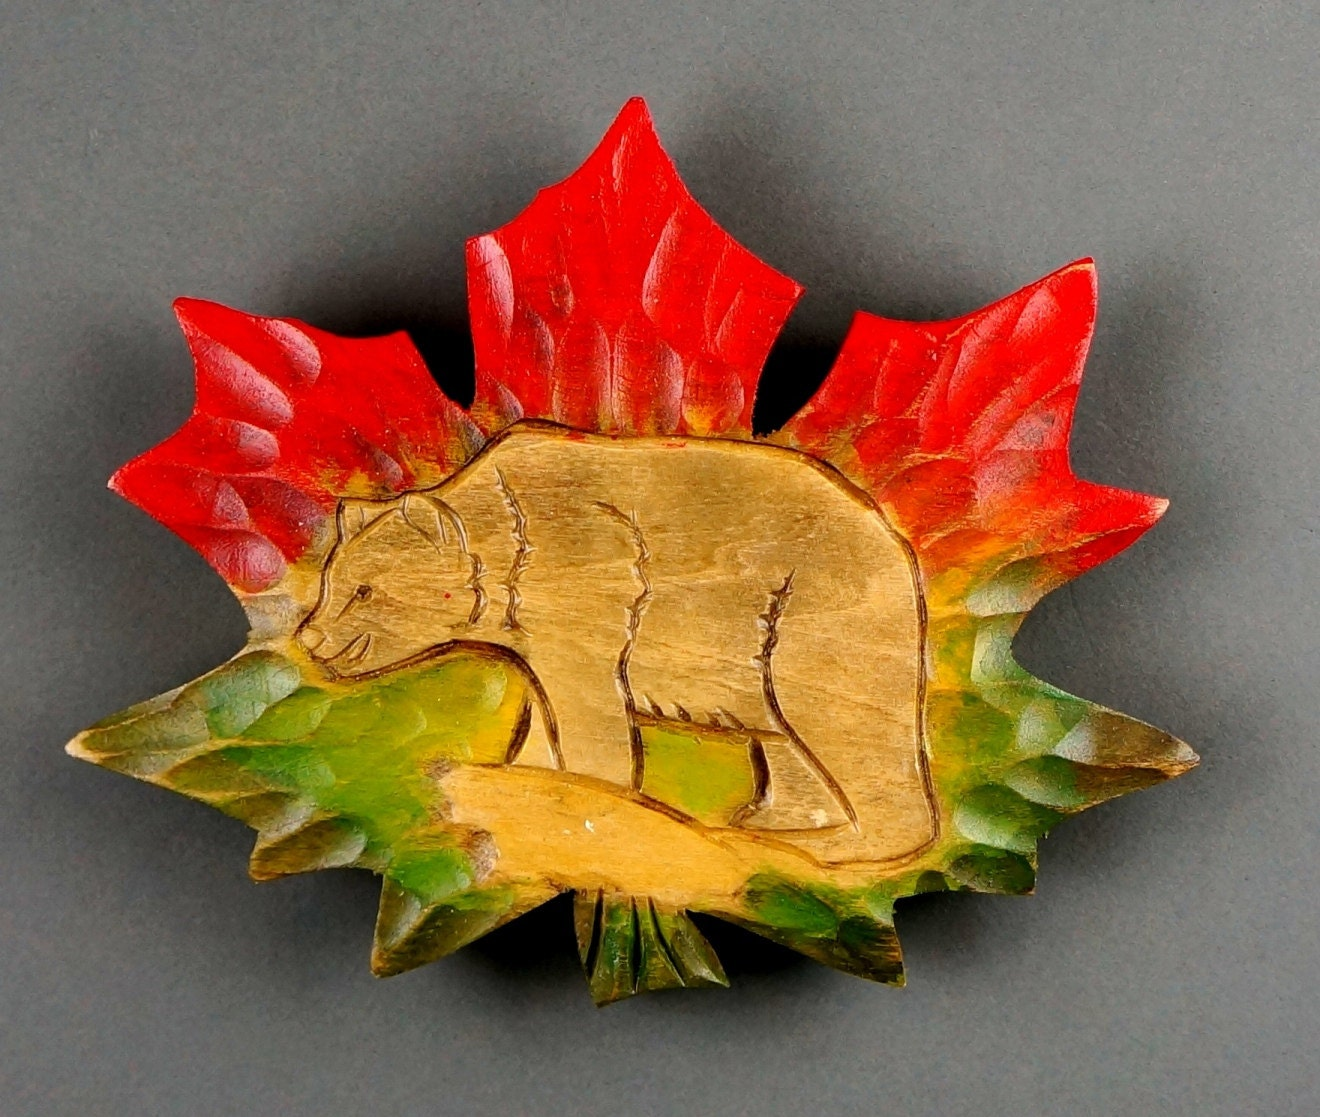 Leaf maple carving wood bear art wall animalier